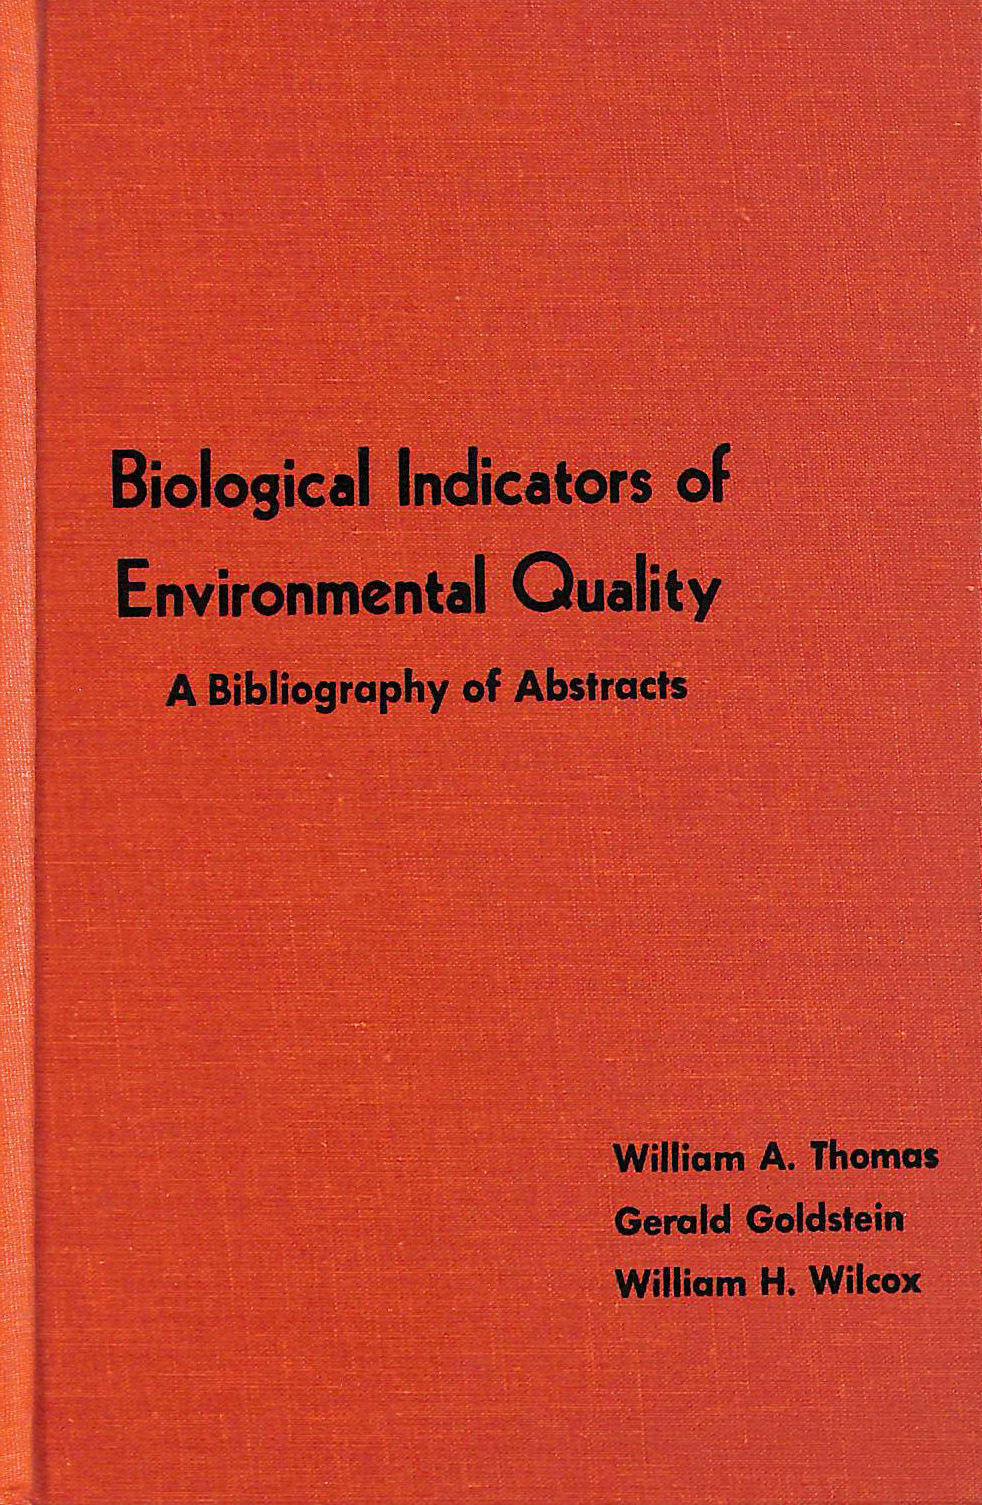 Image for Biological Indicators of Environmental Quality: Bibliography of Abstracts